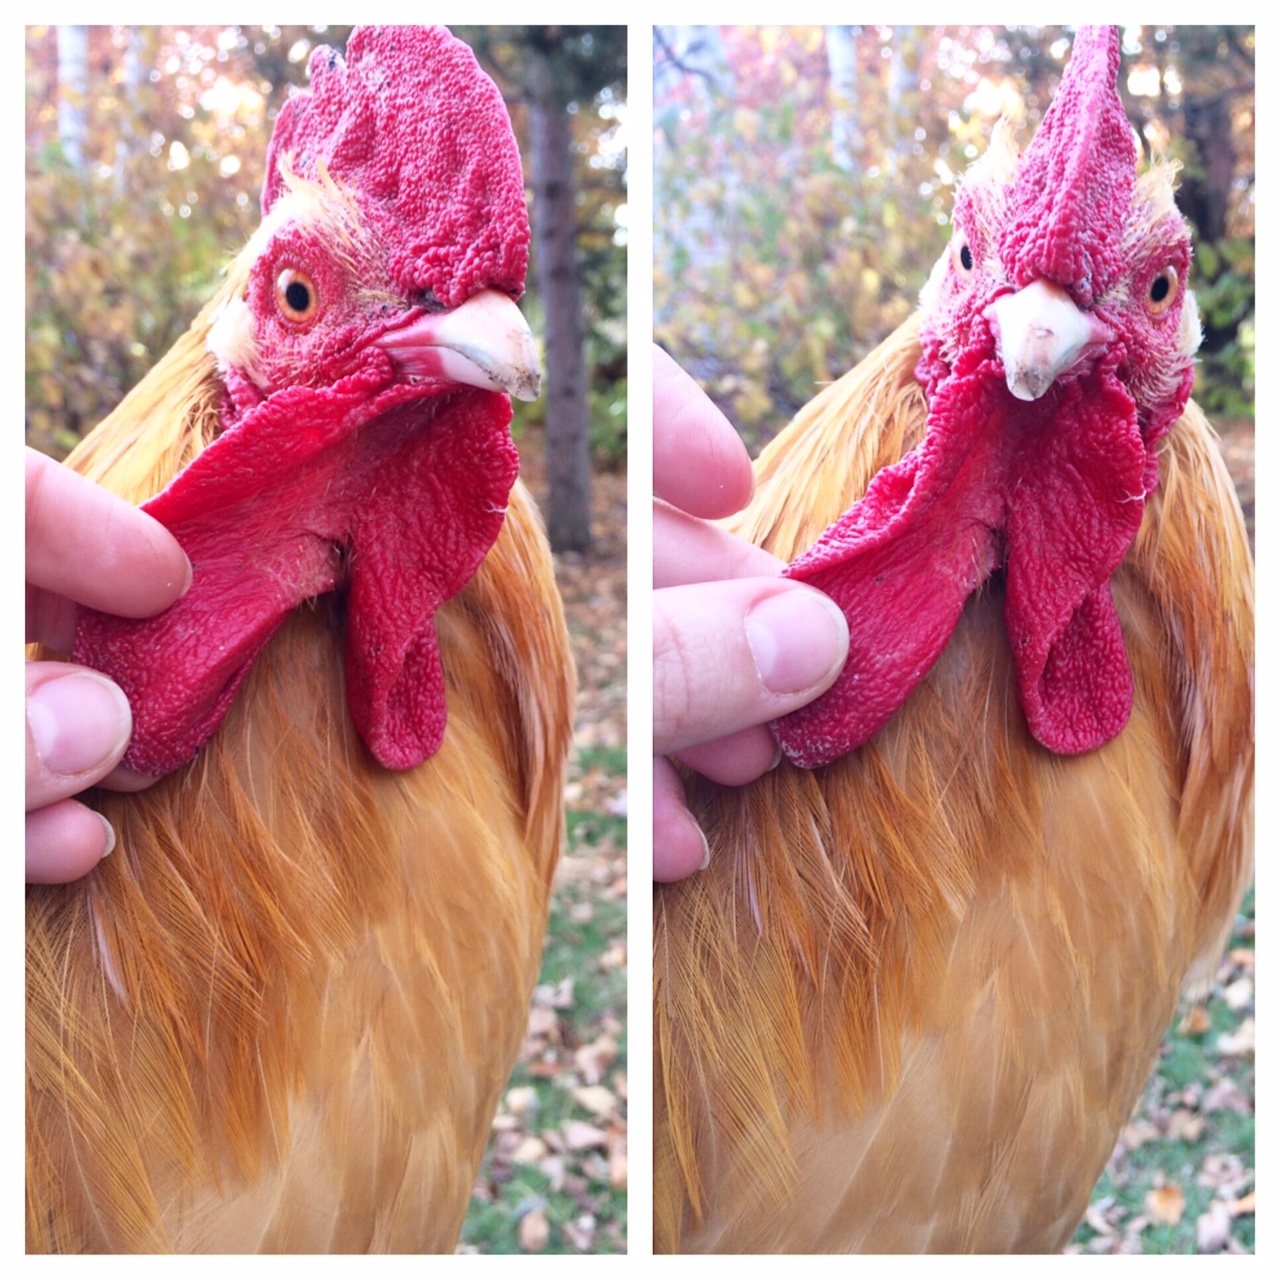 Bolivar wattles, The Loneliest Rooster: A Chicken Story. Do chickens get lonely? | Whole-Fed Homestead